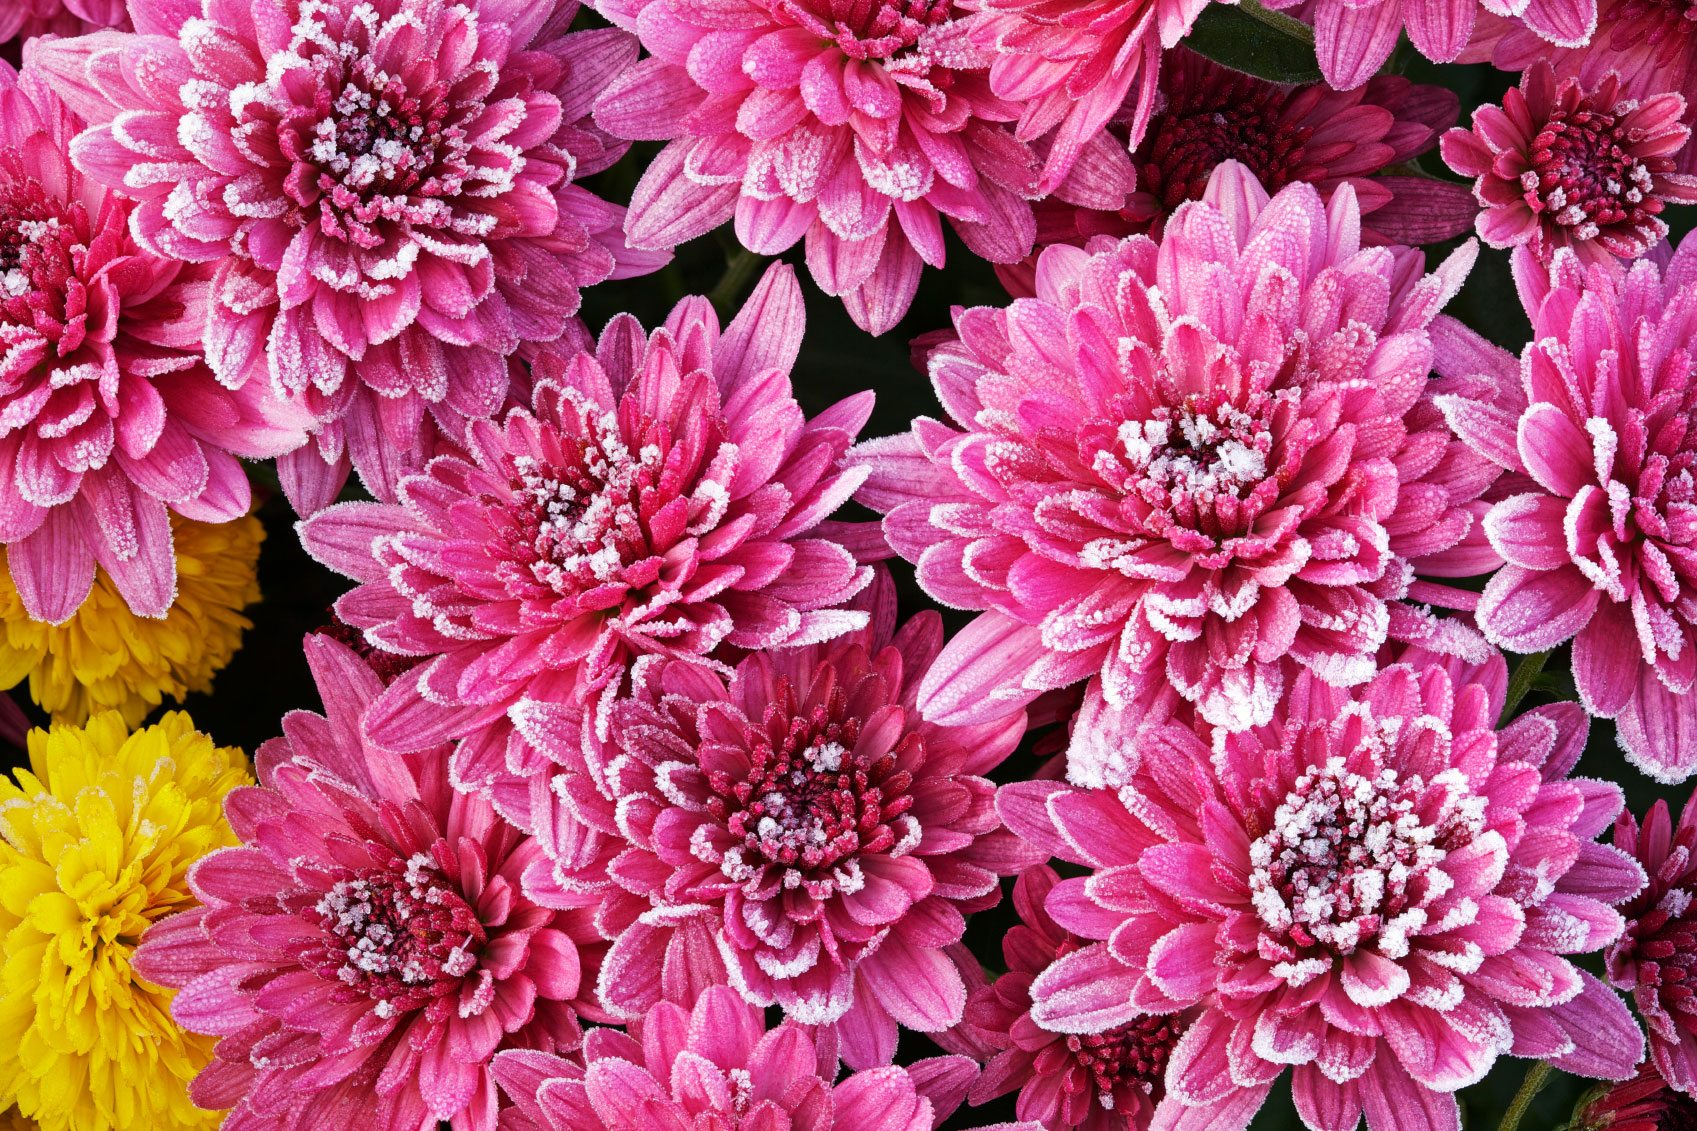 Wintering mums tips for winter care for mums izmirmasajfo